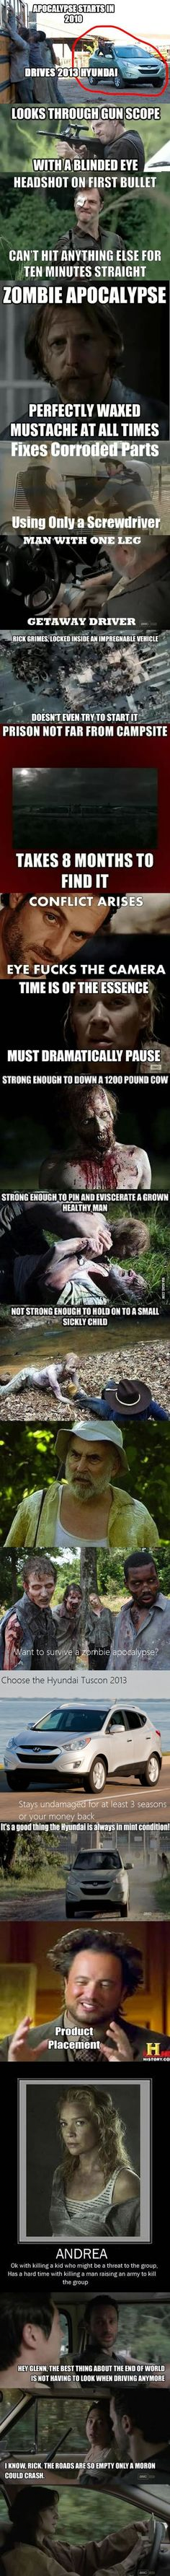 The Most Biting Walking Dead Memes